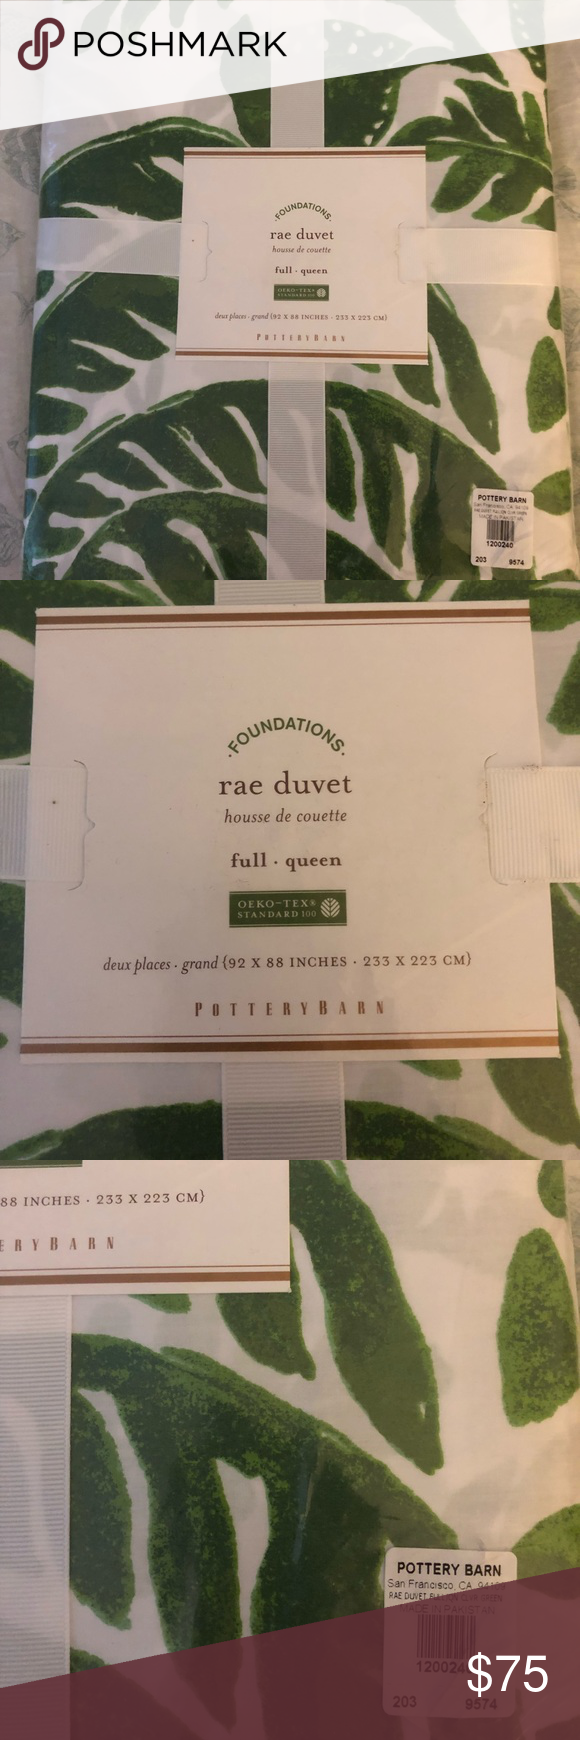 NWT Pottery Barn duvet, full/queen, jungle pattern NWT Pottery Barn Rae duvet in full/queen. Jungle leaf pattern of clover green on white background. Never removed from packaging. 100% cotton. Bundle with matching shams and save 10%. Pottery Barn Bedding Duvet Covers #junglepattern